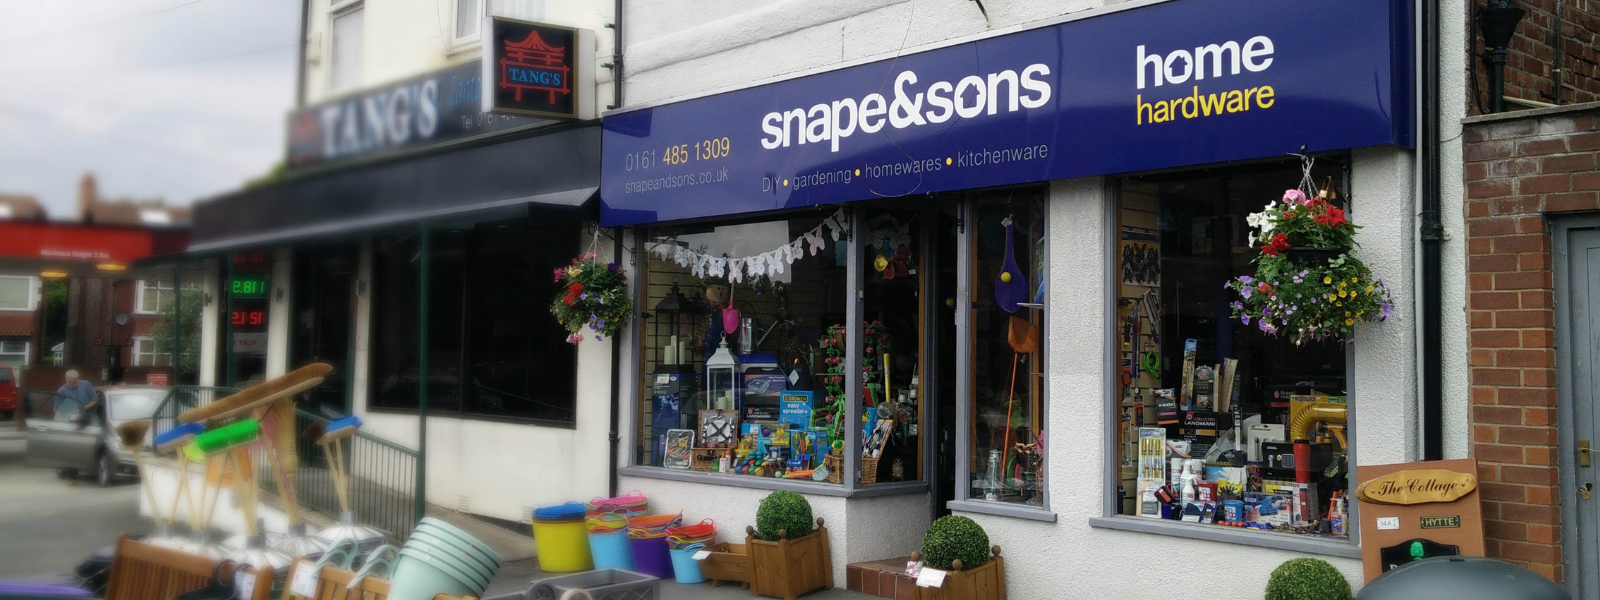 Snape & Sons Shop Front